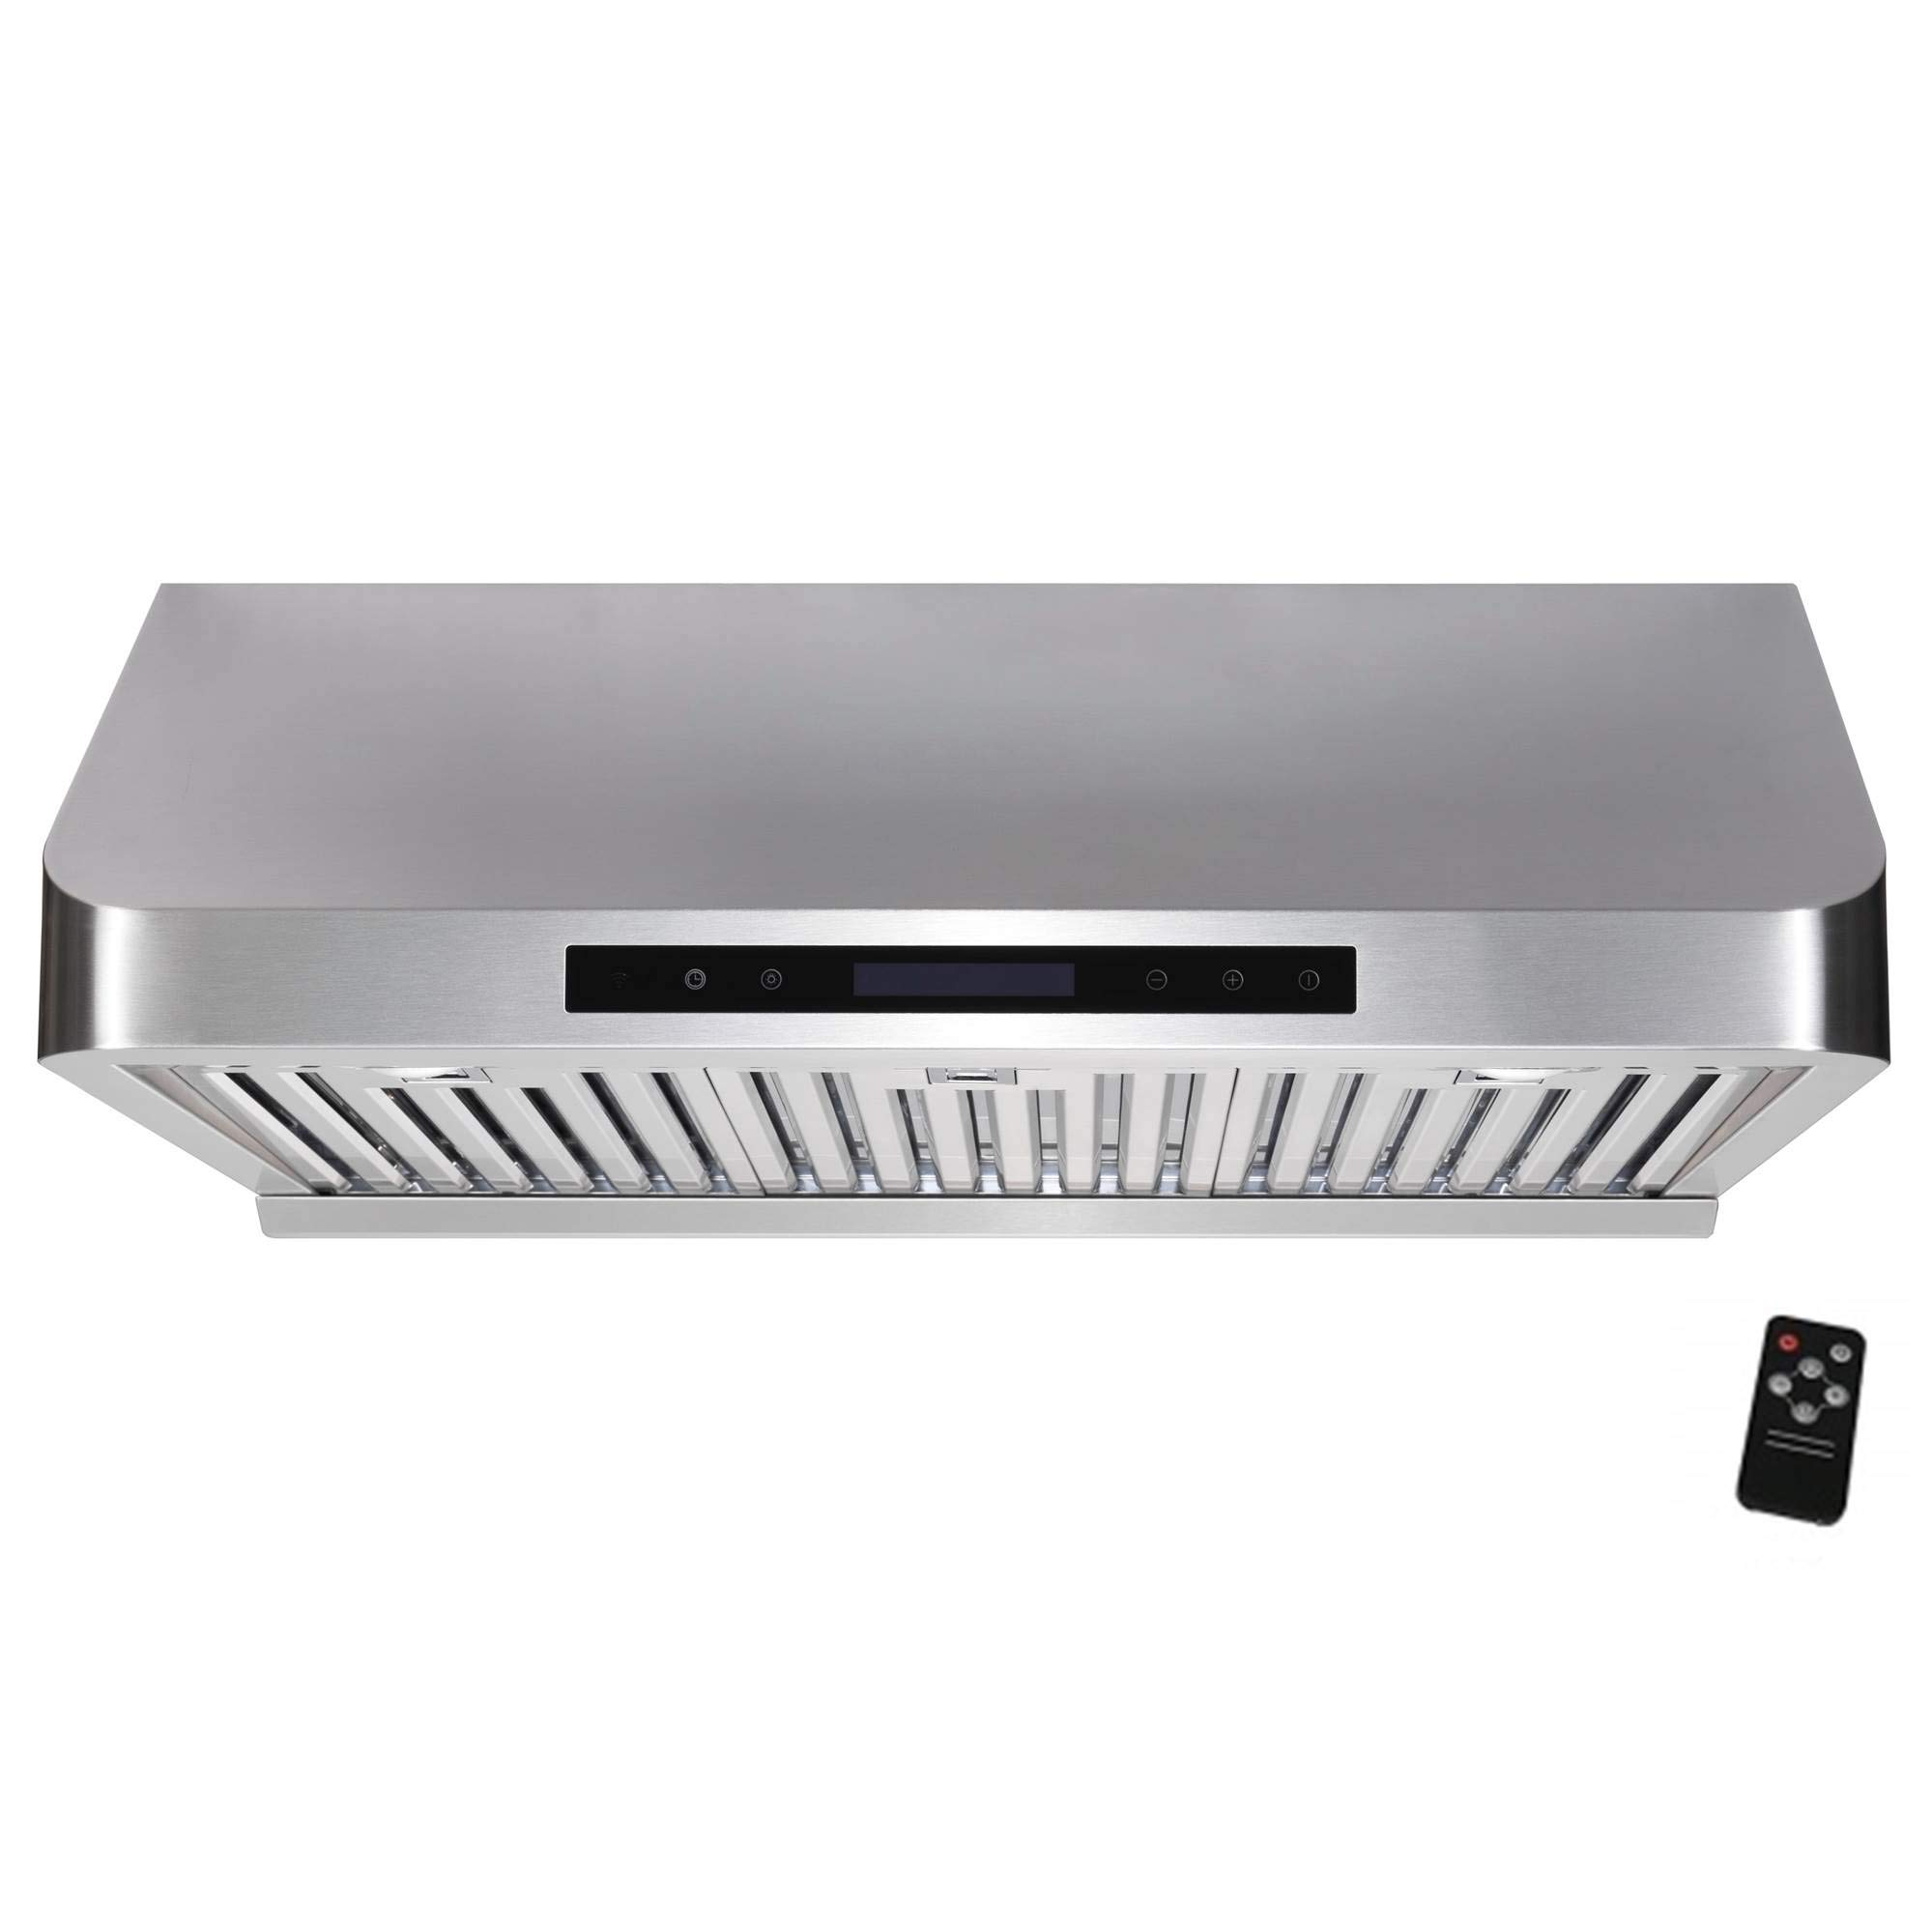 """Awoco 36"""" Supreme 10"""" High Stainless Steel Under Cabinet Range Hood 4 Speeds, 8"""" Round Top Vent, 1000CFM 2 LED Lights, Remote Control & External Oil Collector (RH-S10-36E)"""